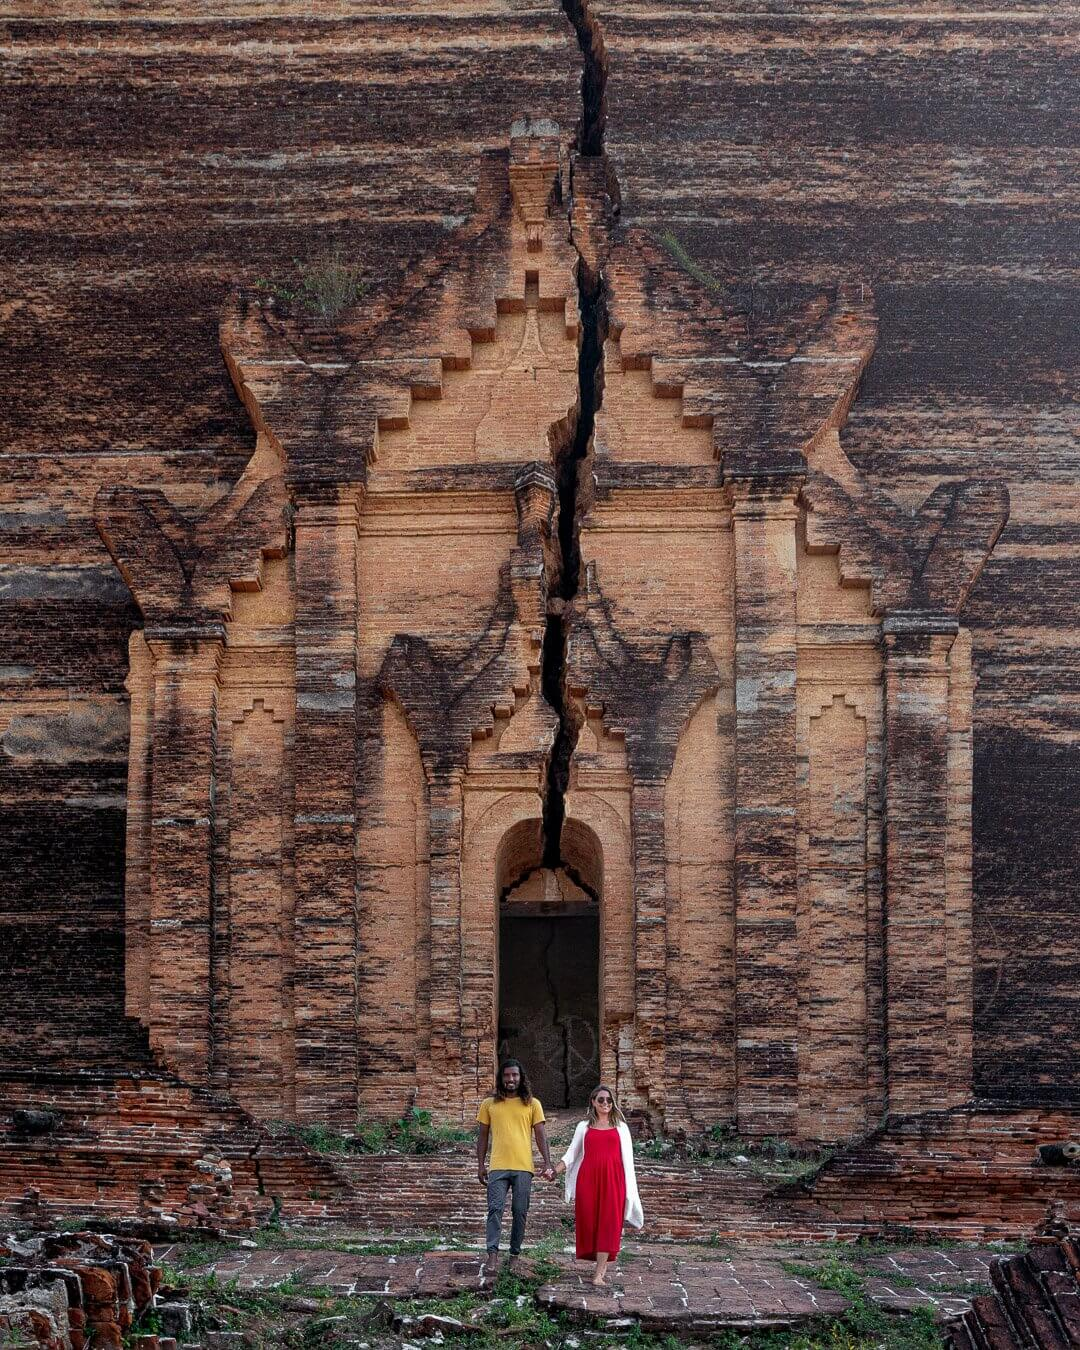 The Mingun Pagoda is a popular sight in Mingun near Mandalay in Myanmar. The pagoda is actually only 1/3 of its intended height and has a large crack from an earthquake.